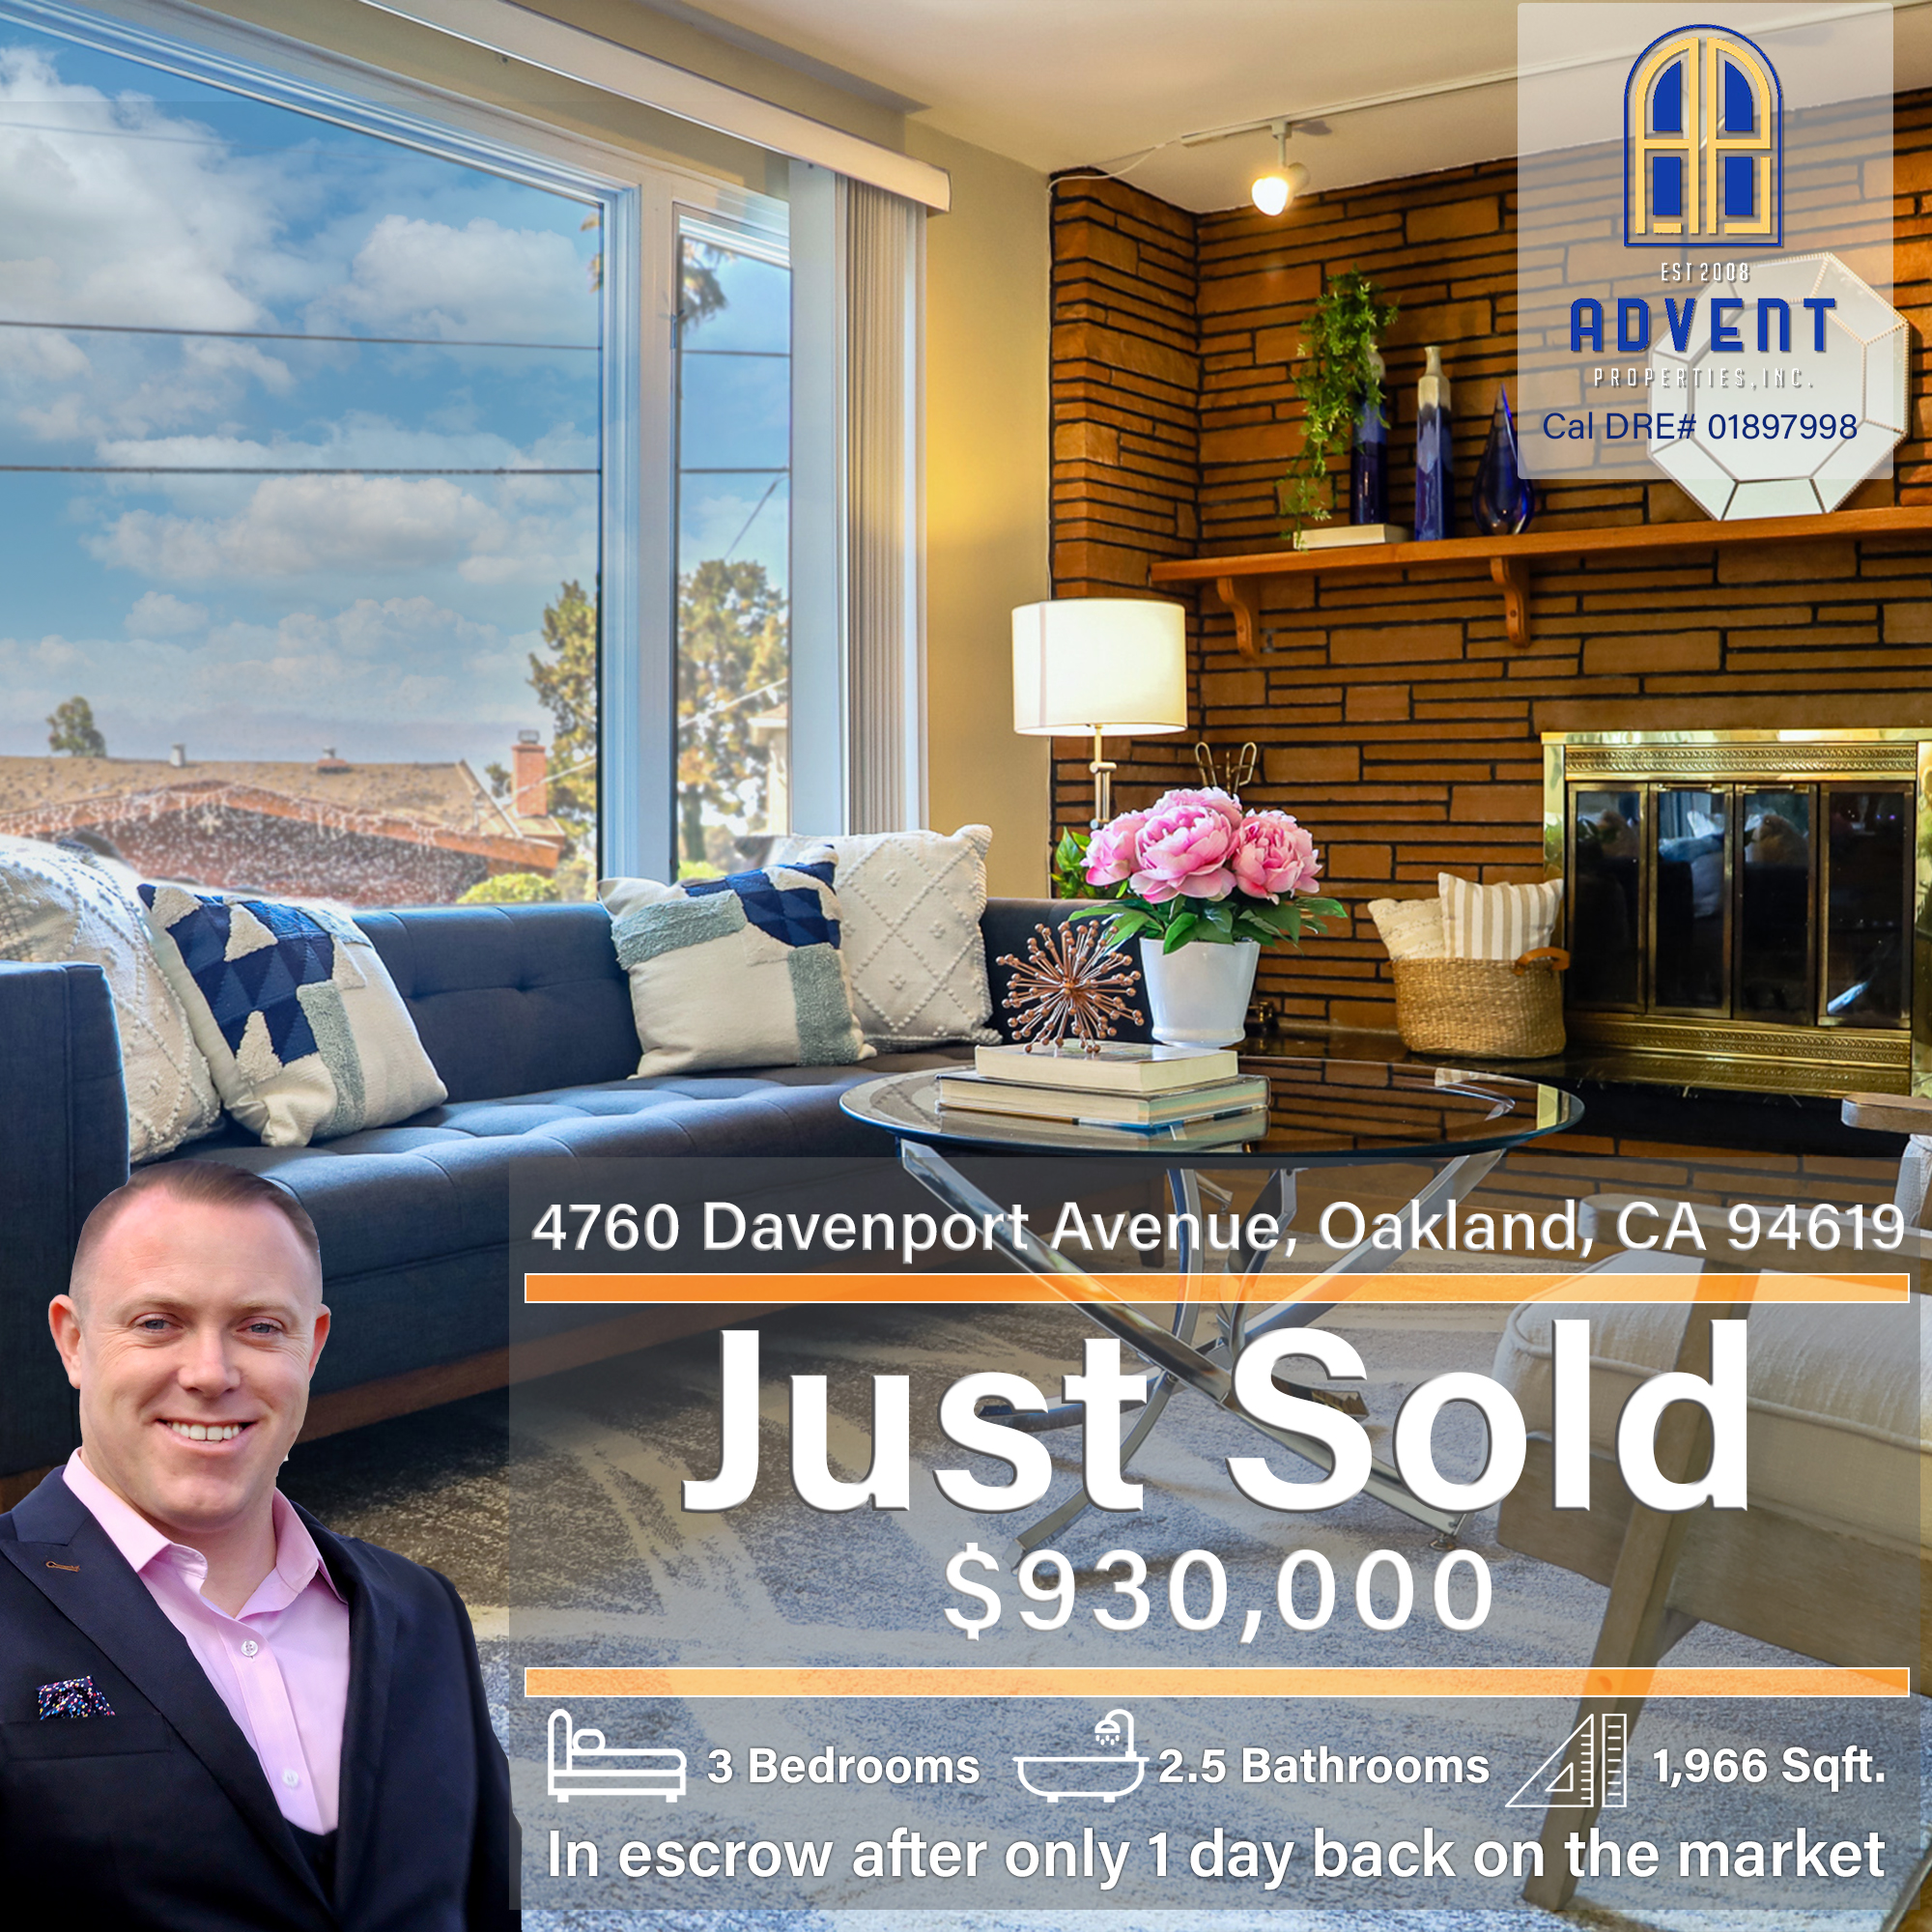 Just Sold by Darryl Glass: 4760 Davenport Avenue, Oakland CA, 94619